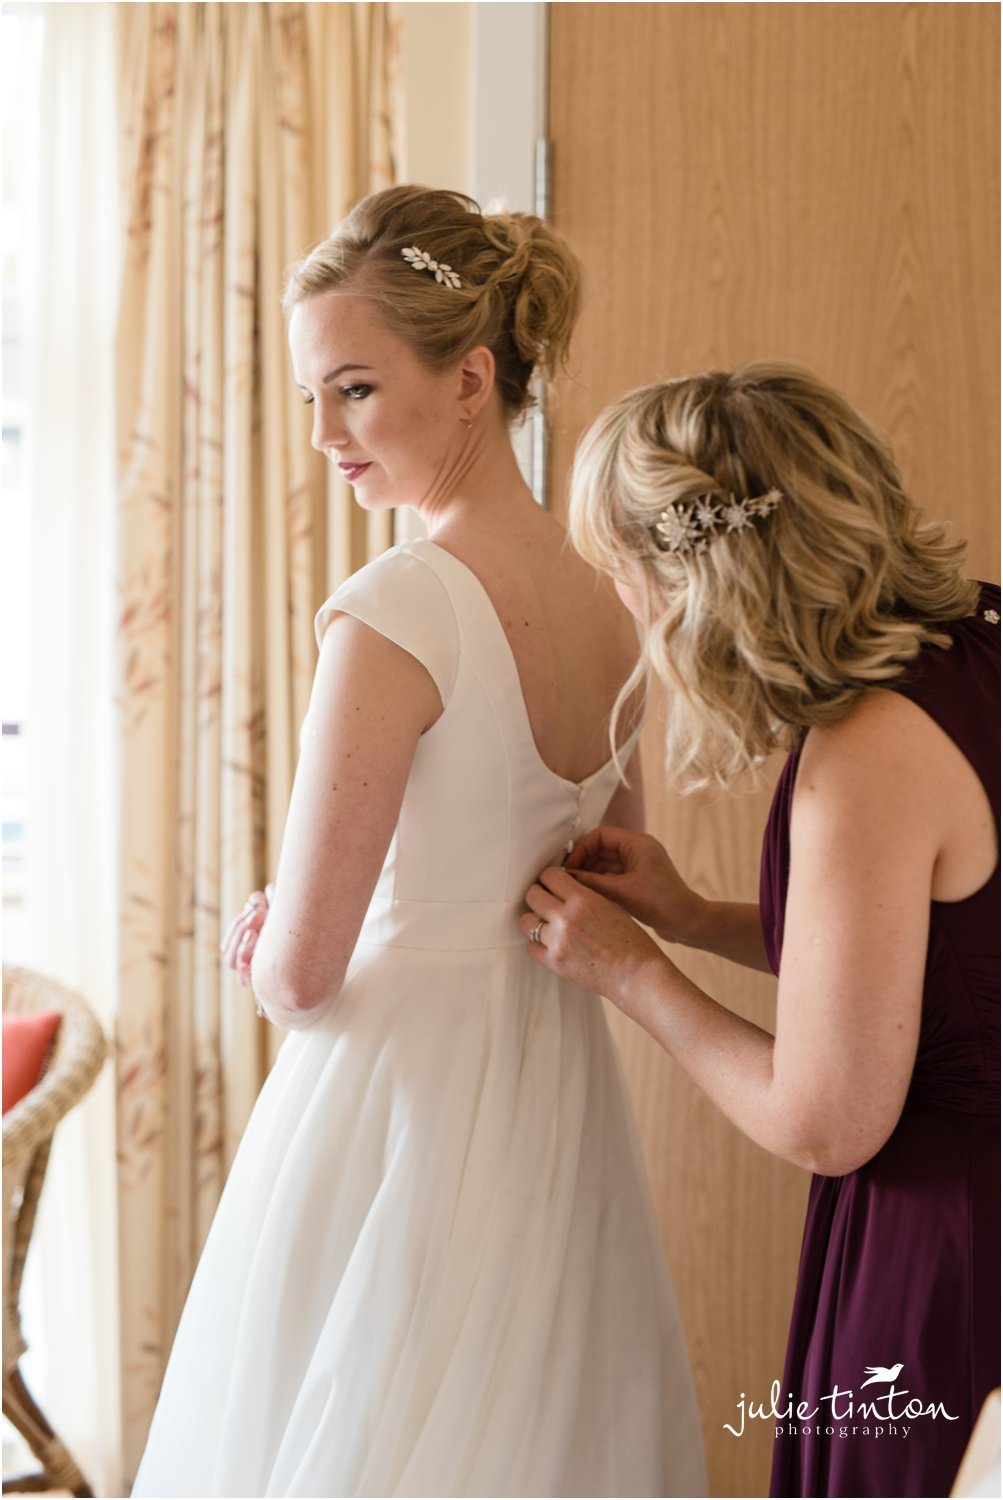 Bridesmaid helping bride to get dressed